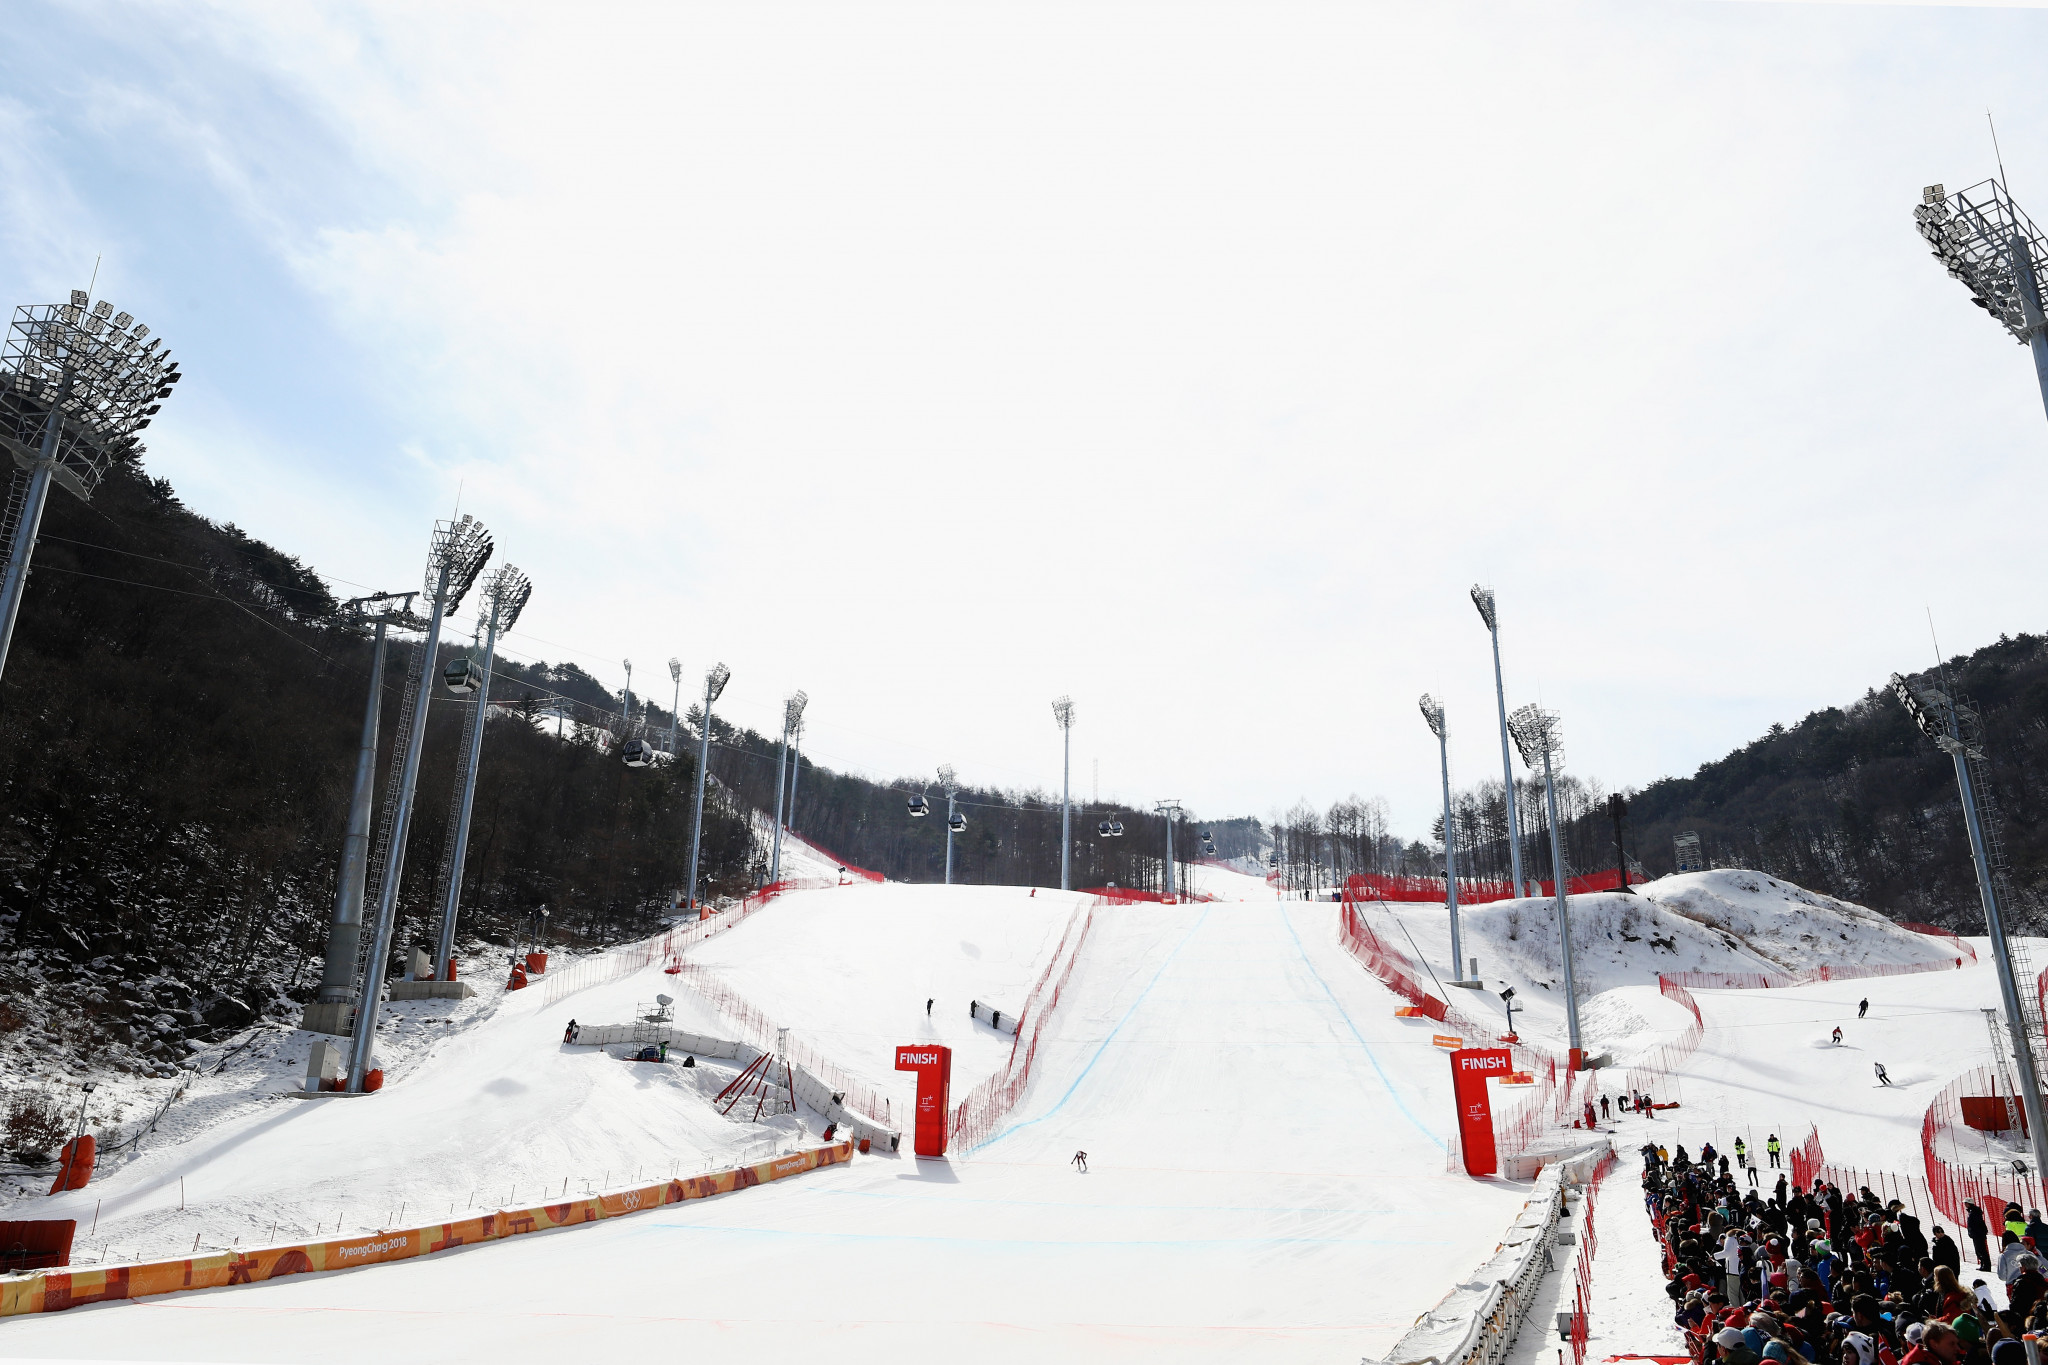 The Jeongseon Alpine Centre is one of three venues used during the 2018 Winter Olympic and Paralympic Games in Pyeongchang where legacy plans have not been confirmed ©Getty Images